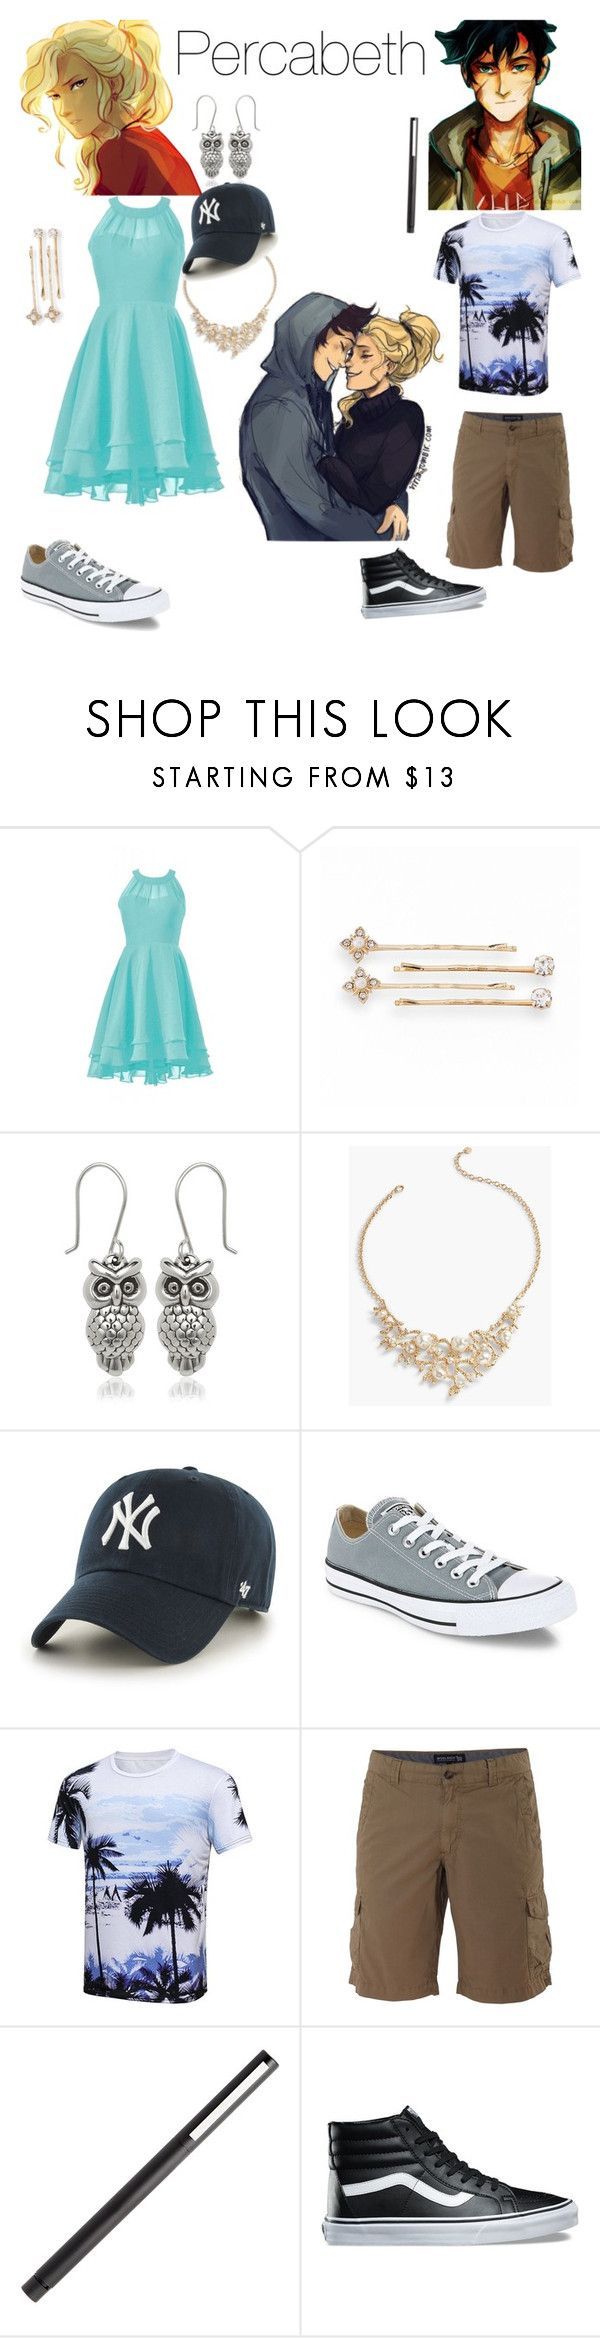 """Percabeth"" by mackieloomis ❤ liked on Polyvore featuring LC Lauren Conrad, Talbots, '47 Brand, Converse, Woolrich and Vans"